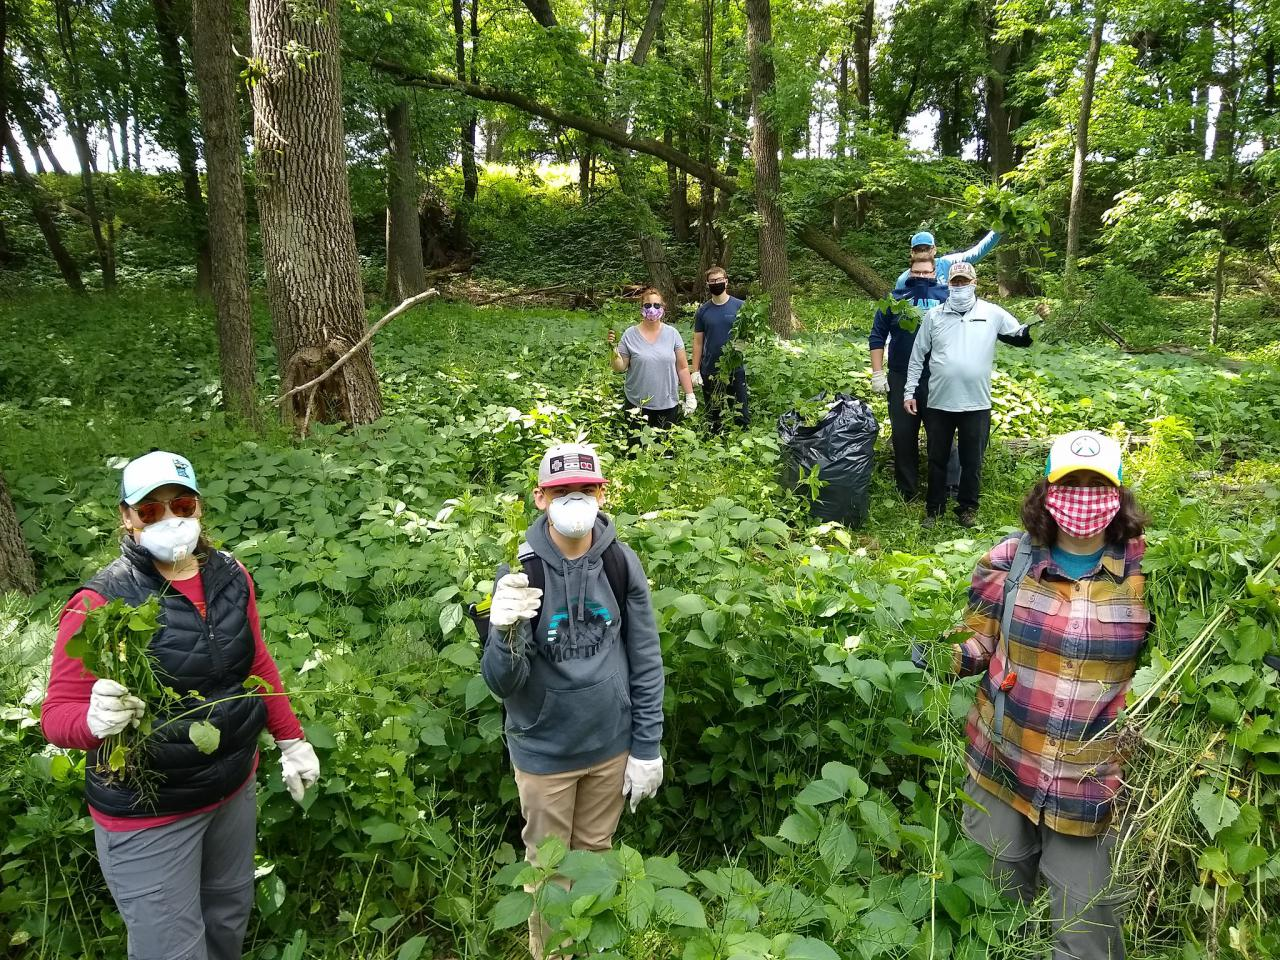 Volunteers show off their invasive haul at the 2020 event tending Houlton Farm